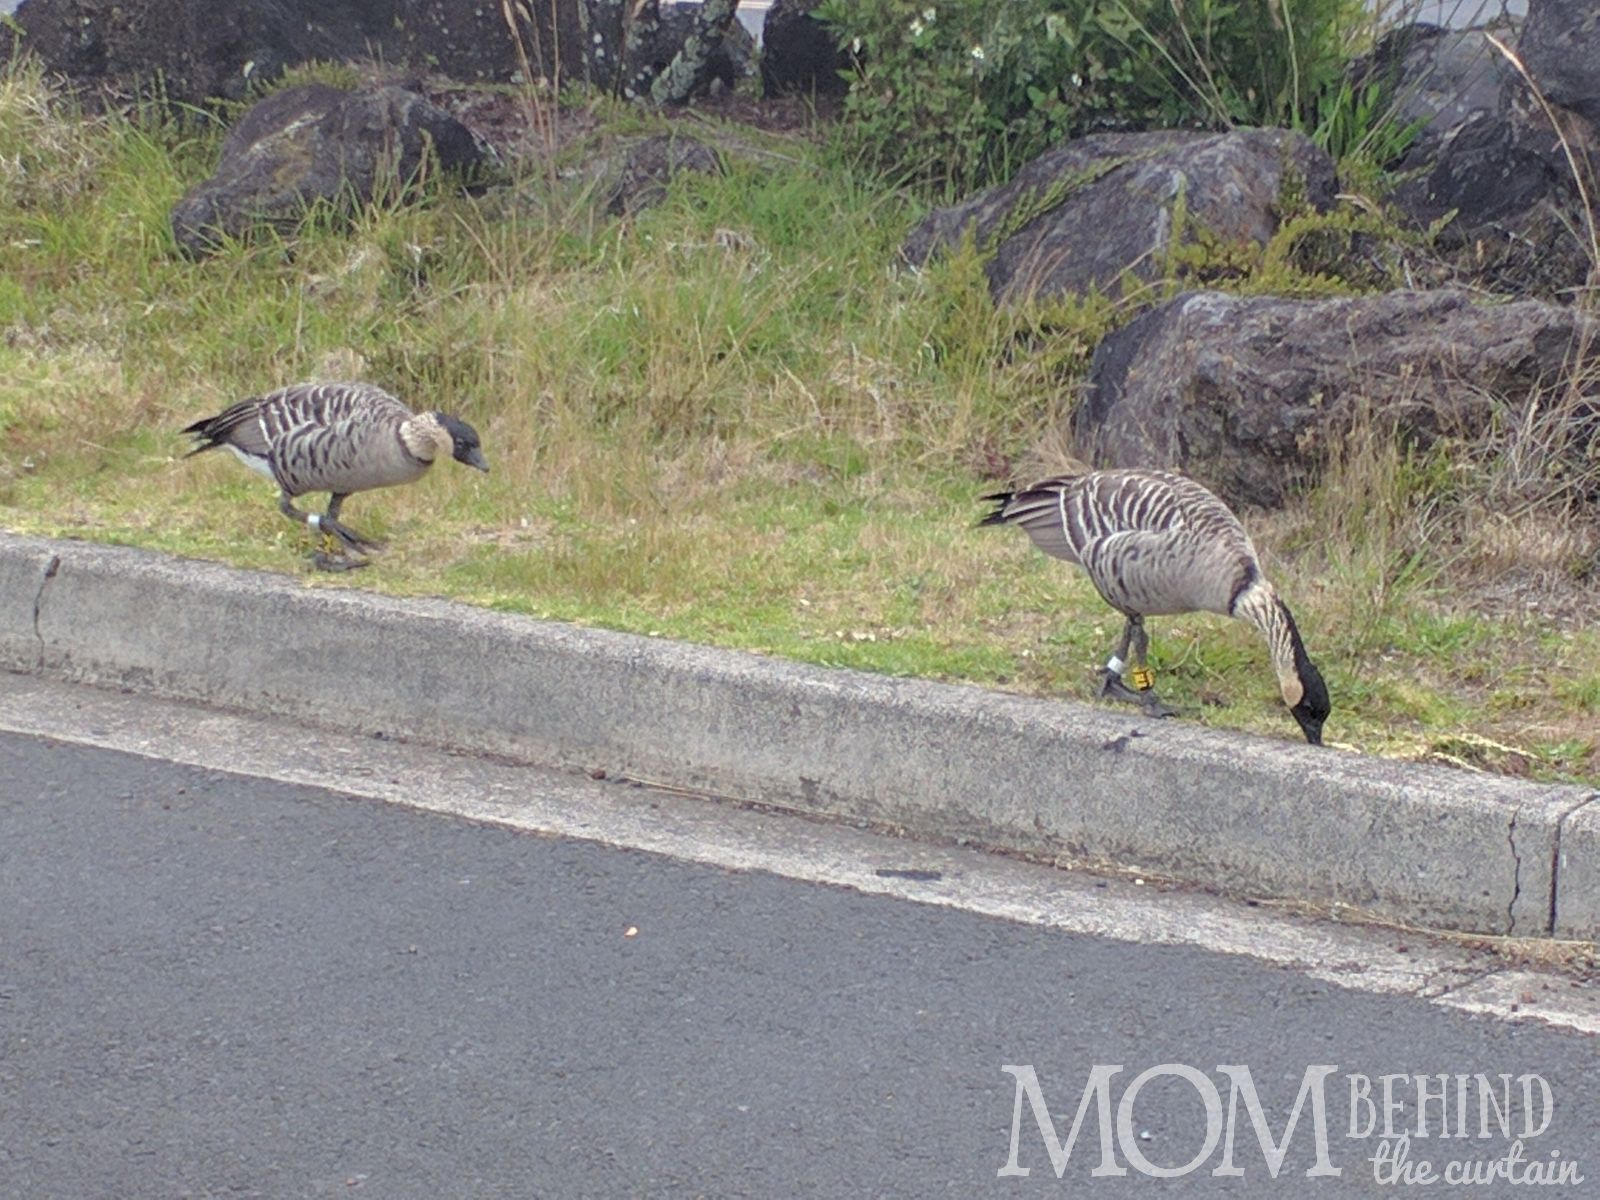 NeNe bird Hawaii on Maui Summit and crater drive.